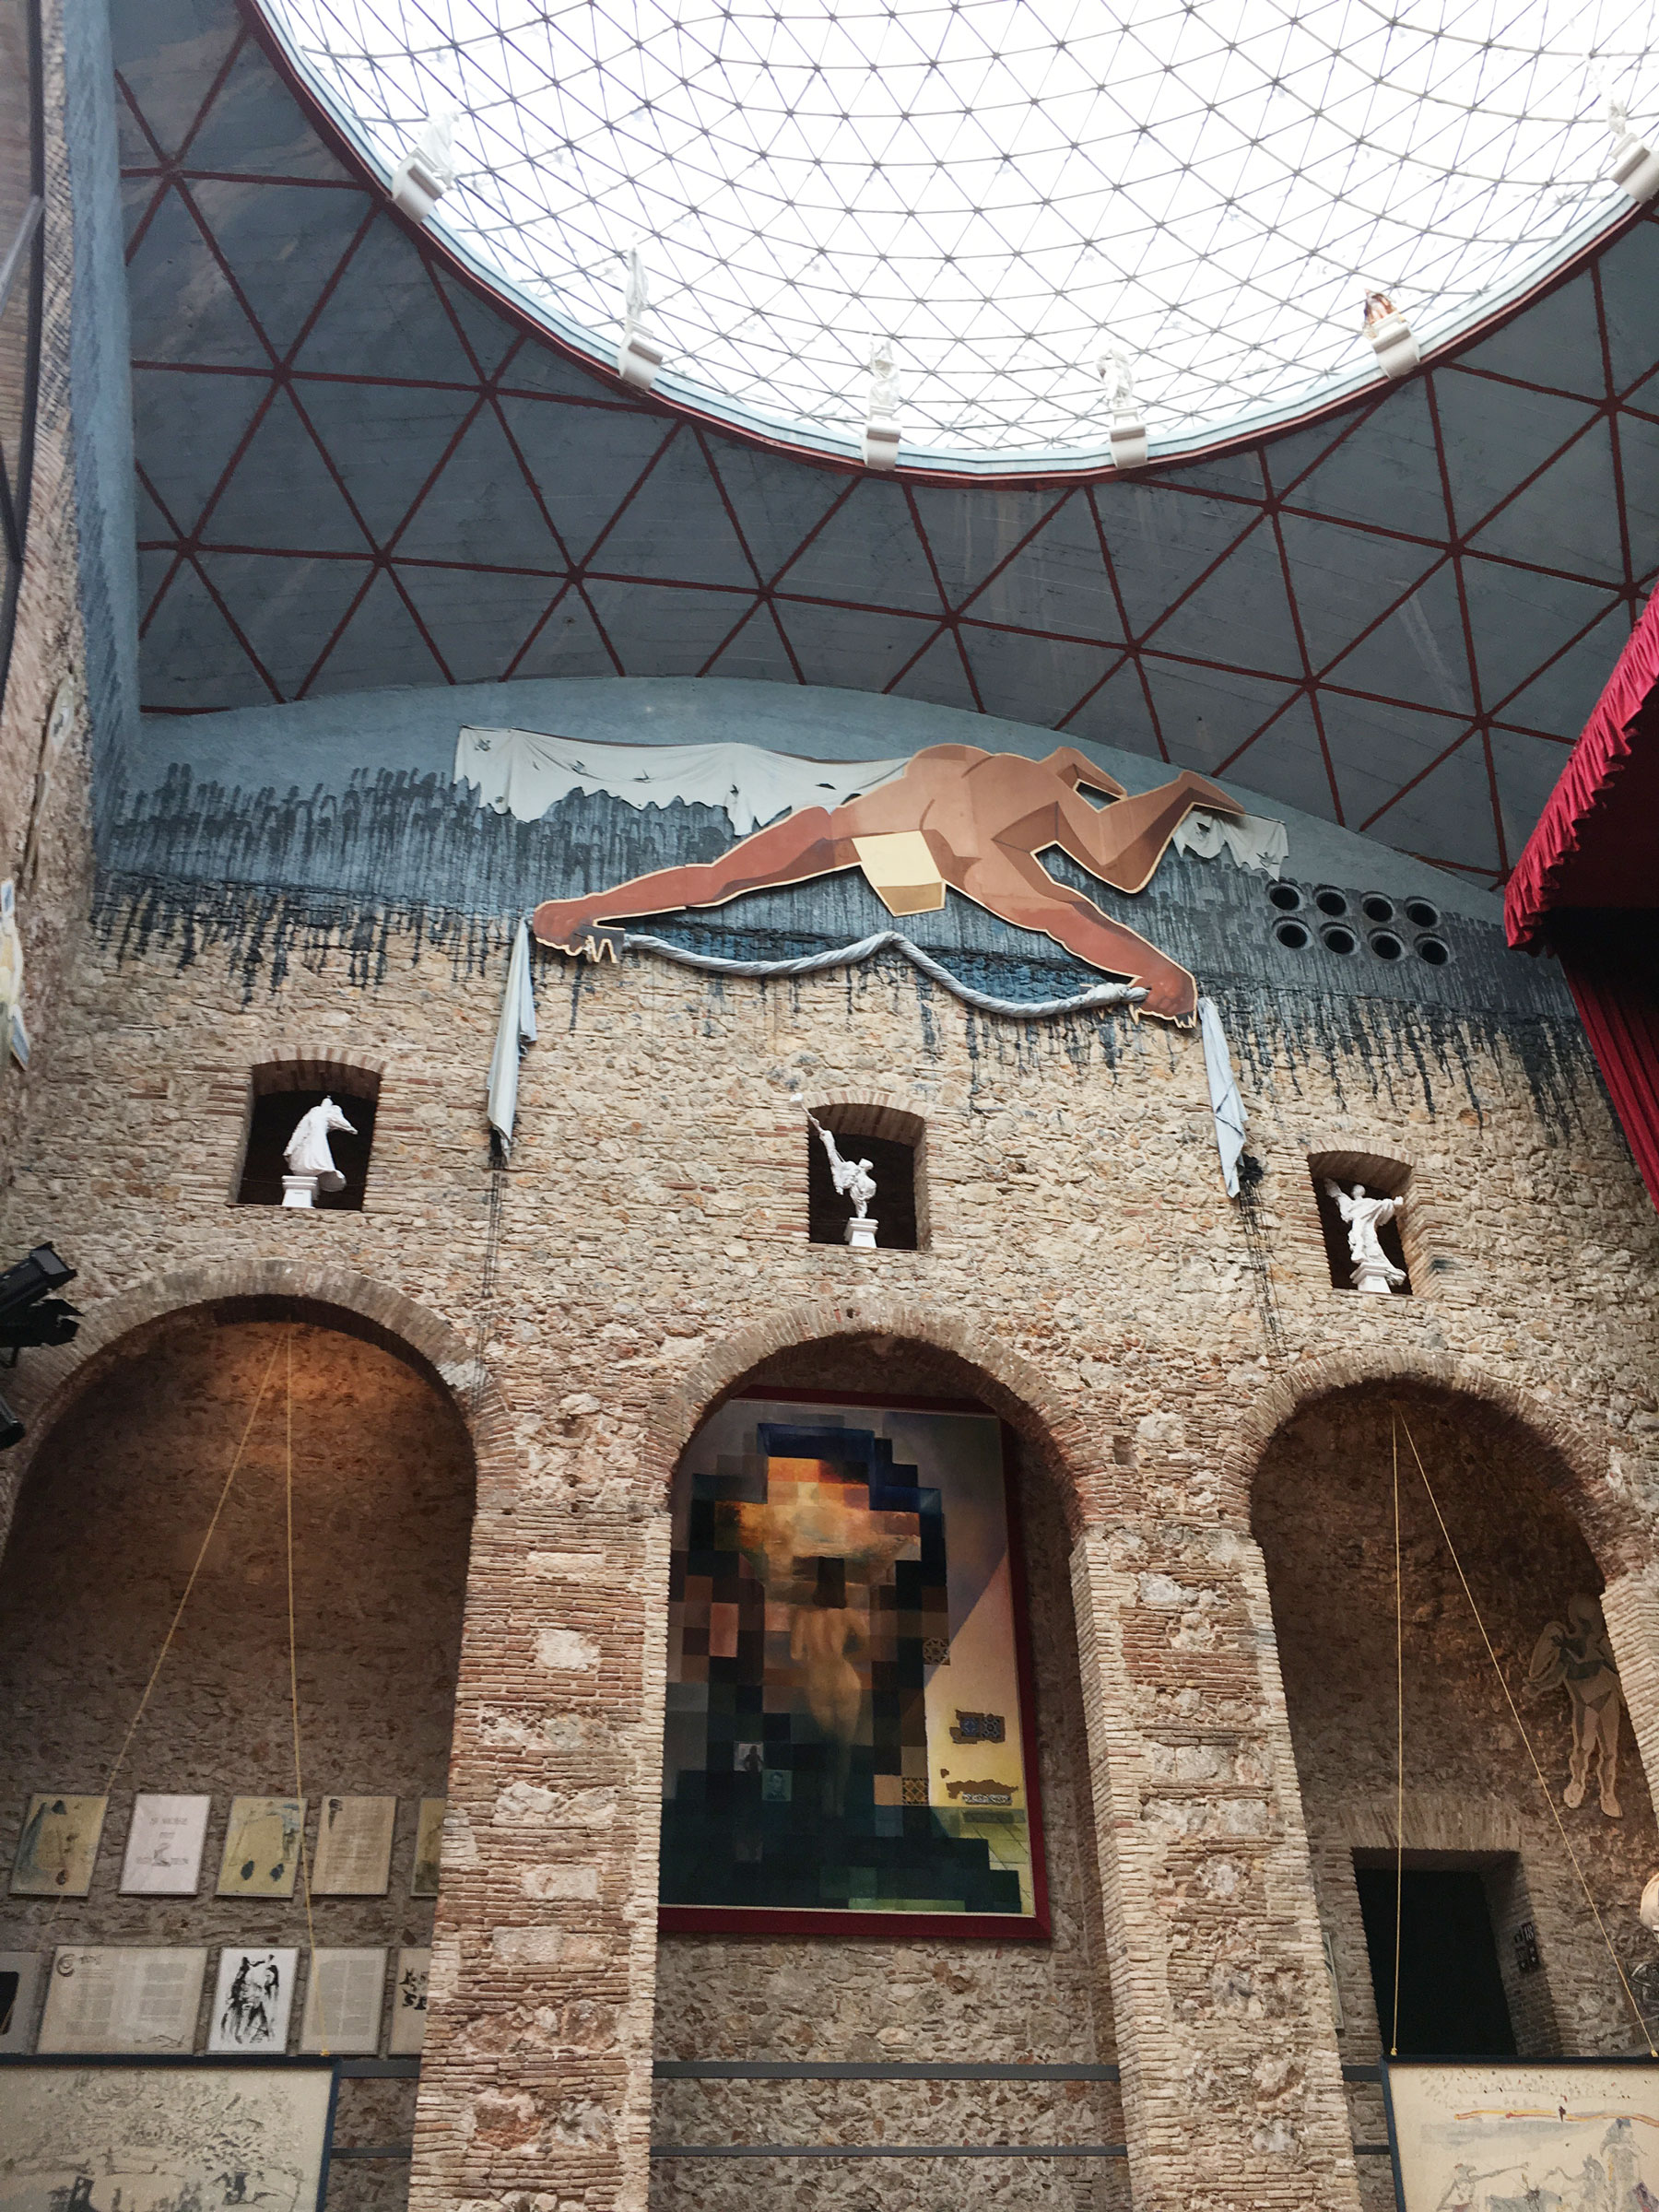 Day trip from Barcelona - Dali museum in Figueres #daytripfrombarcelona #dalimuseum #figueres